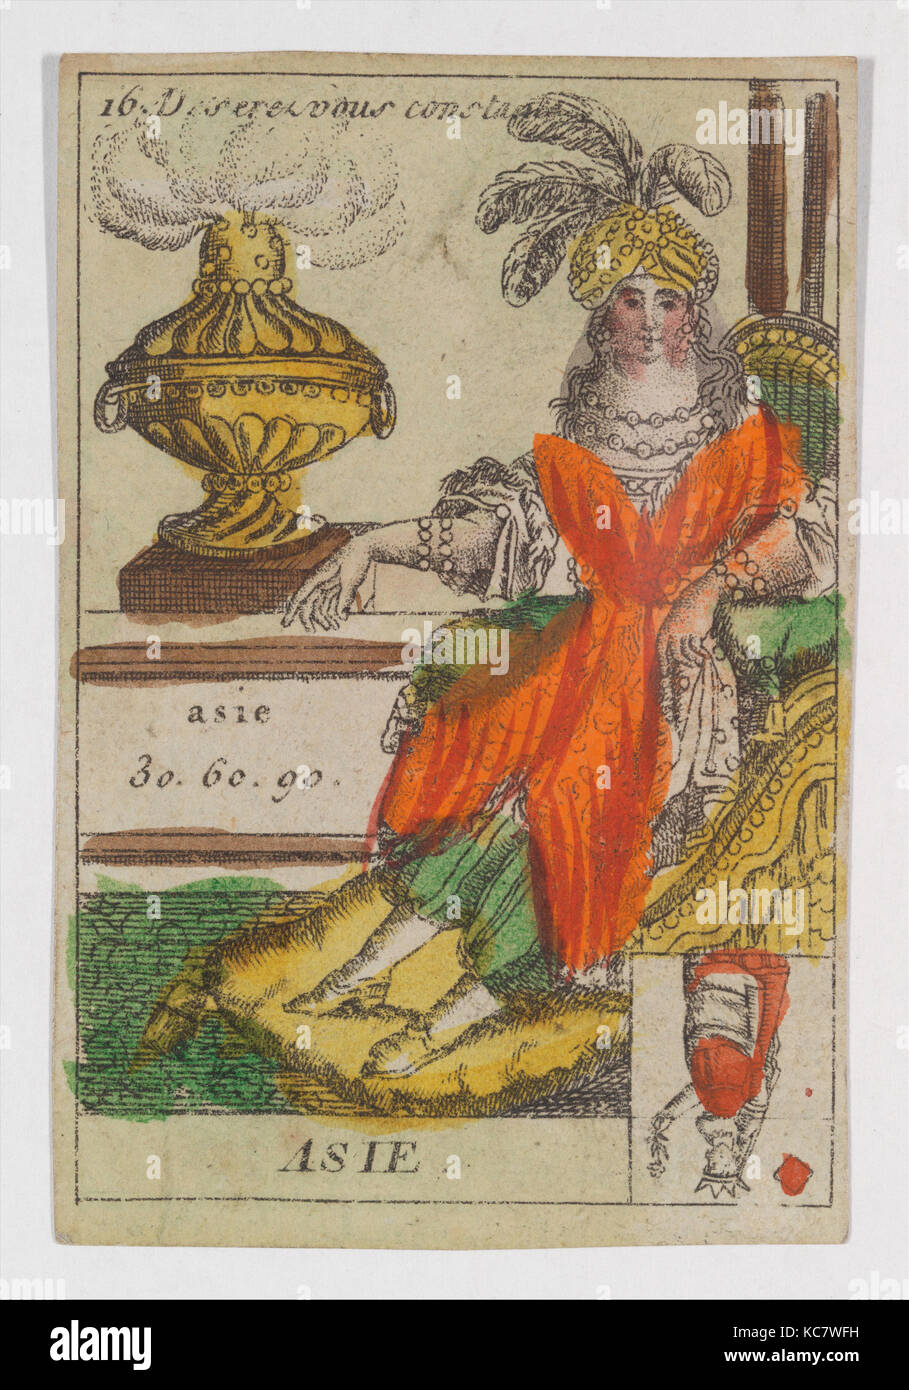 Asie from Playing Cards (for Quartets) 'Costumes des Peuples Étrangers', Anonymous, French, 18th century, - Stock Image